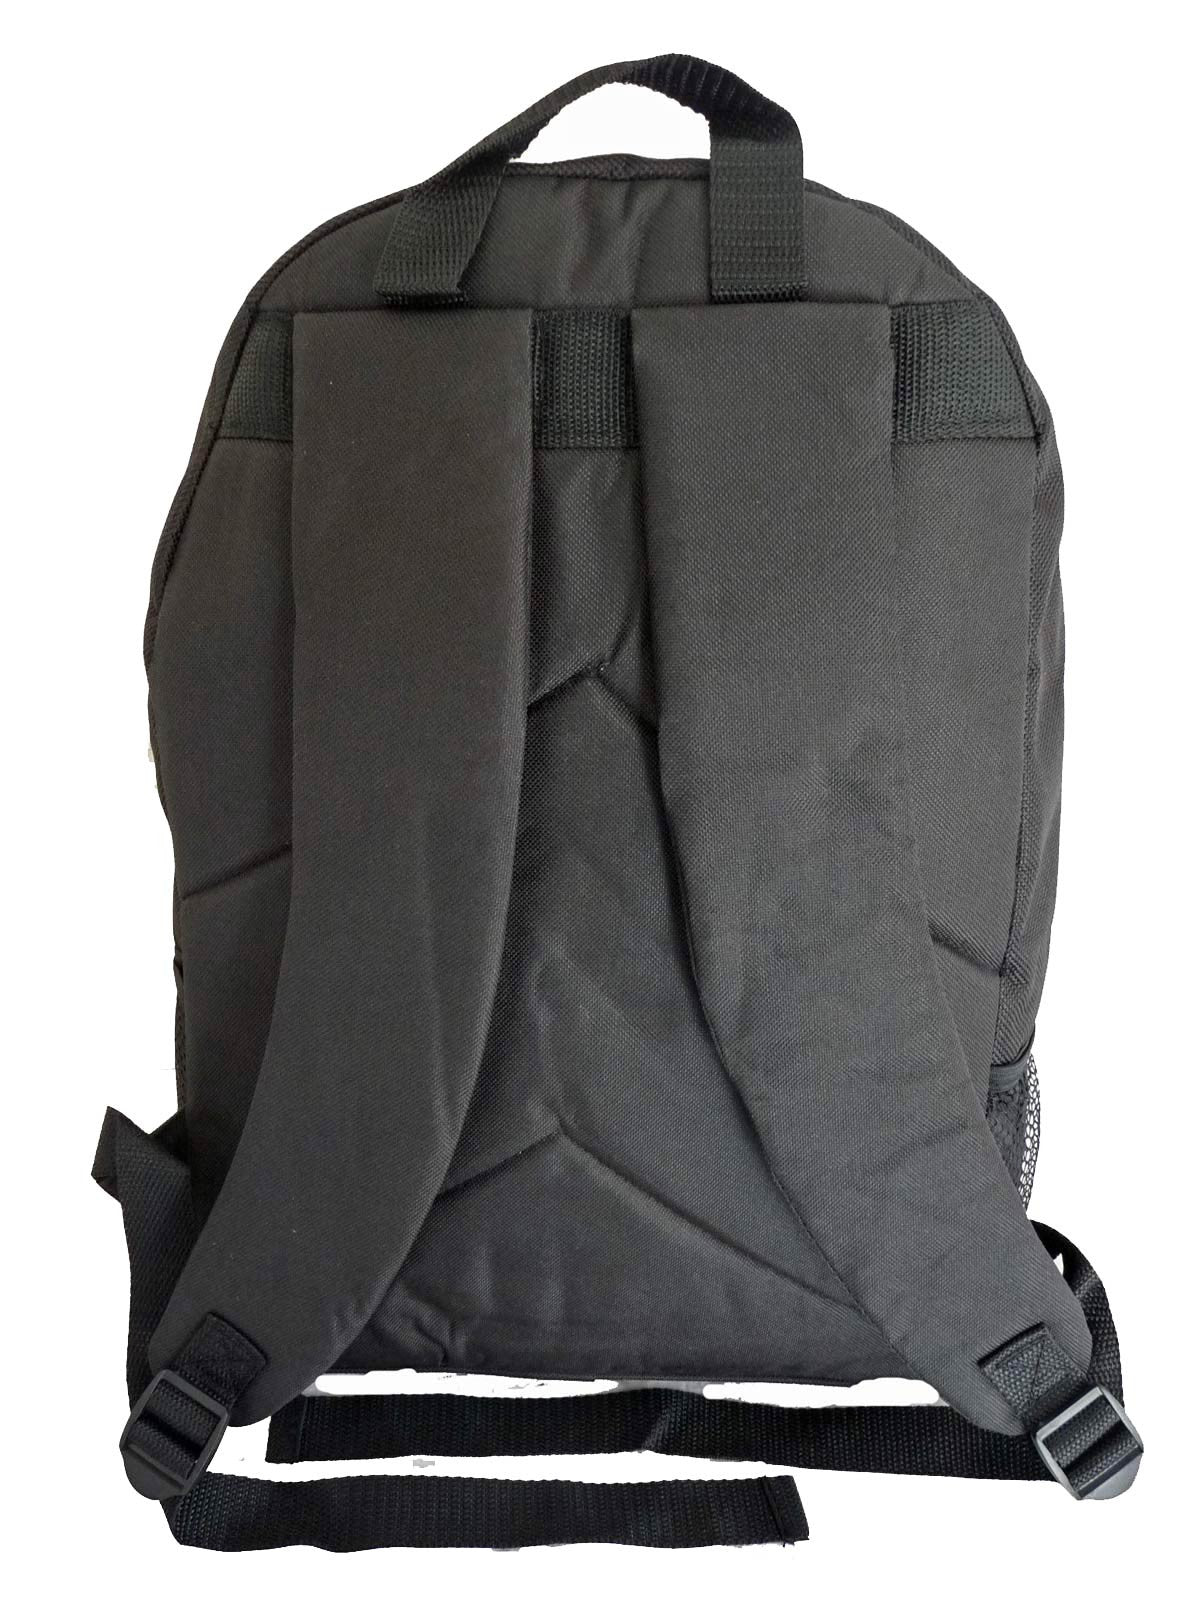 Kids School Bags RL37M Black Back View